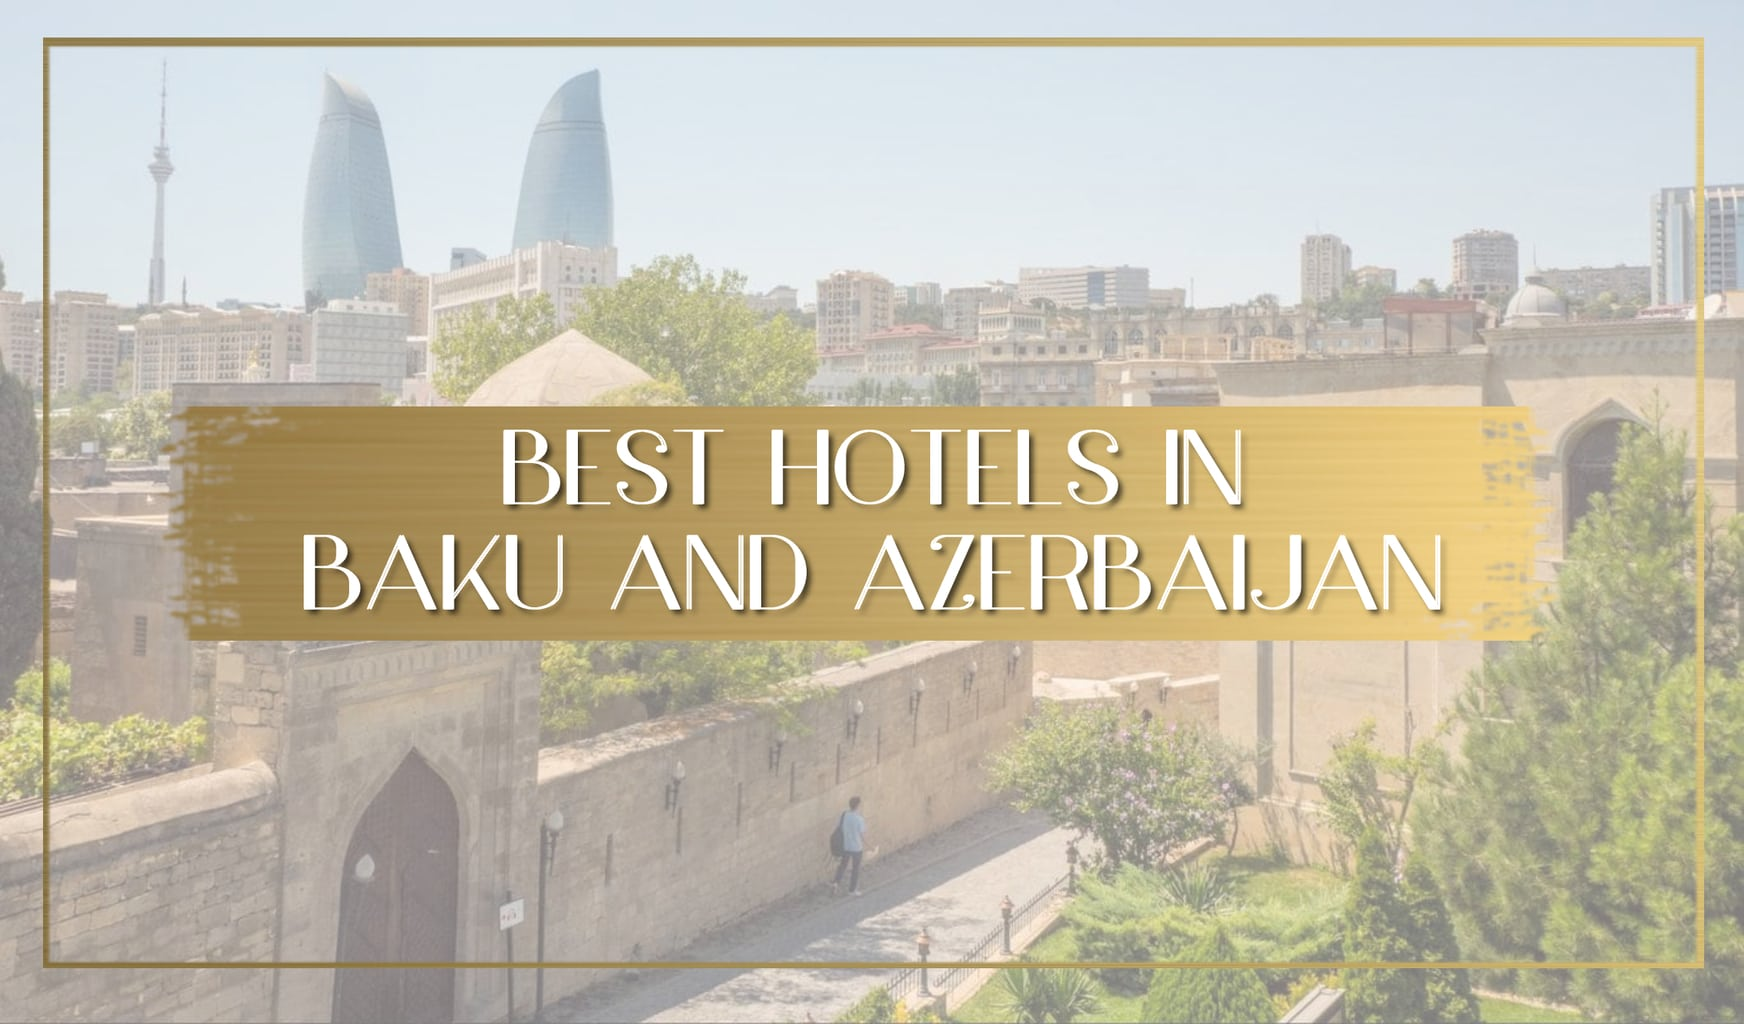 Best hotels in Baku and Azerbaijan main